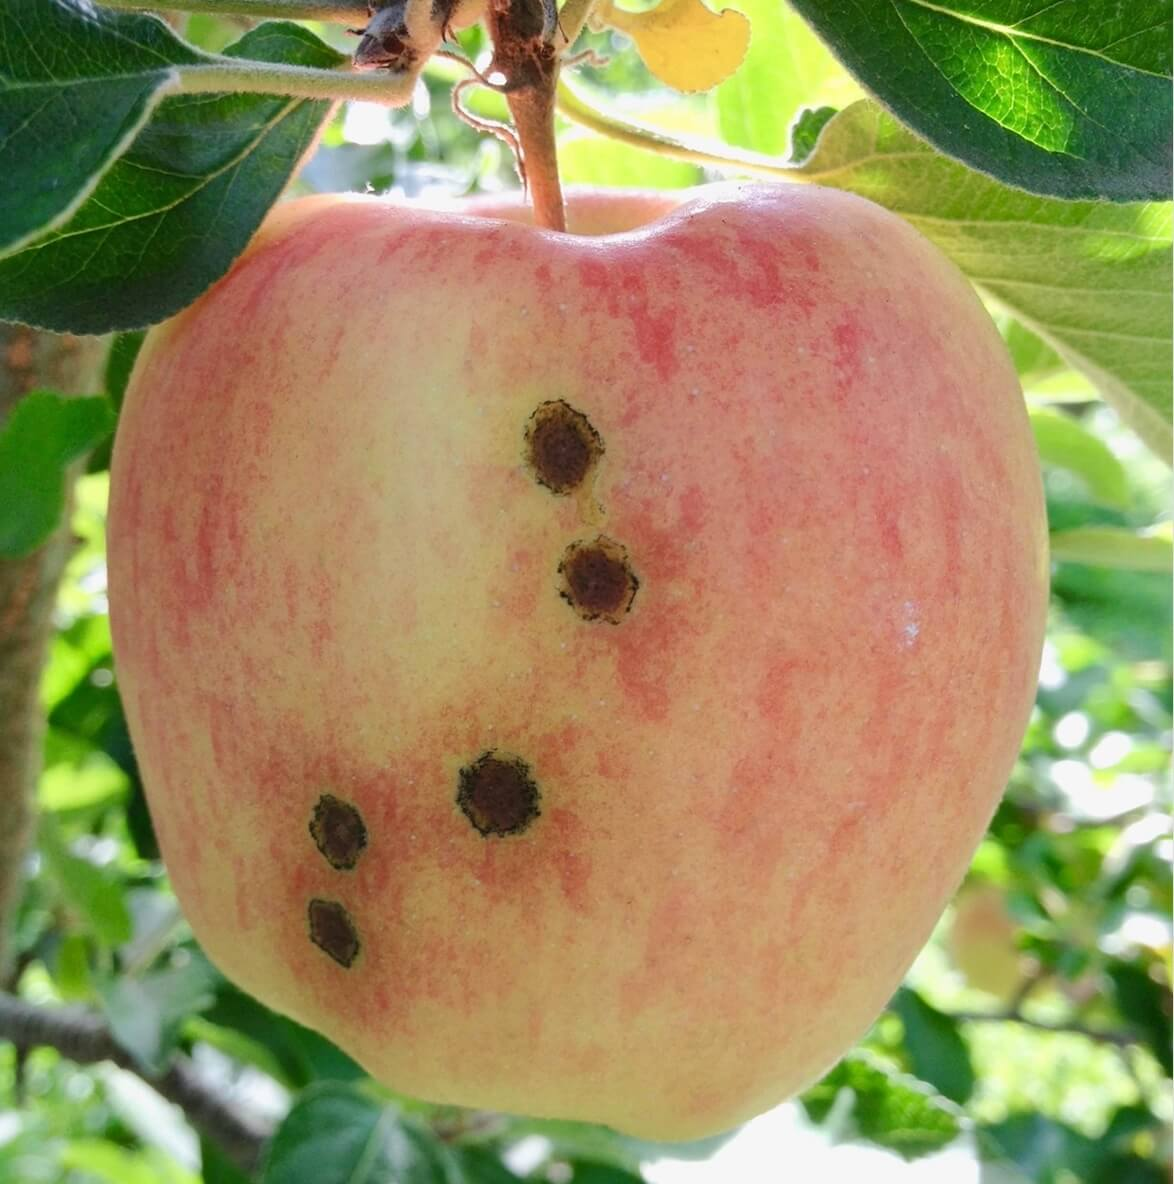 Apple Scab on Gala apples